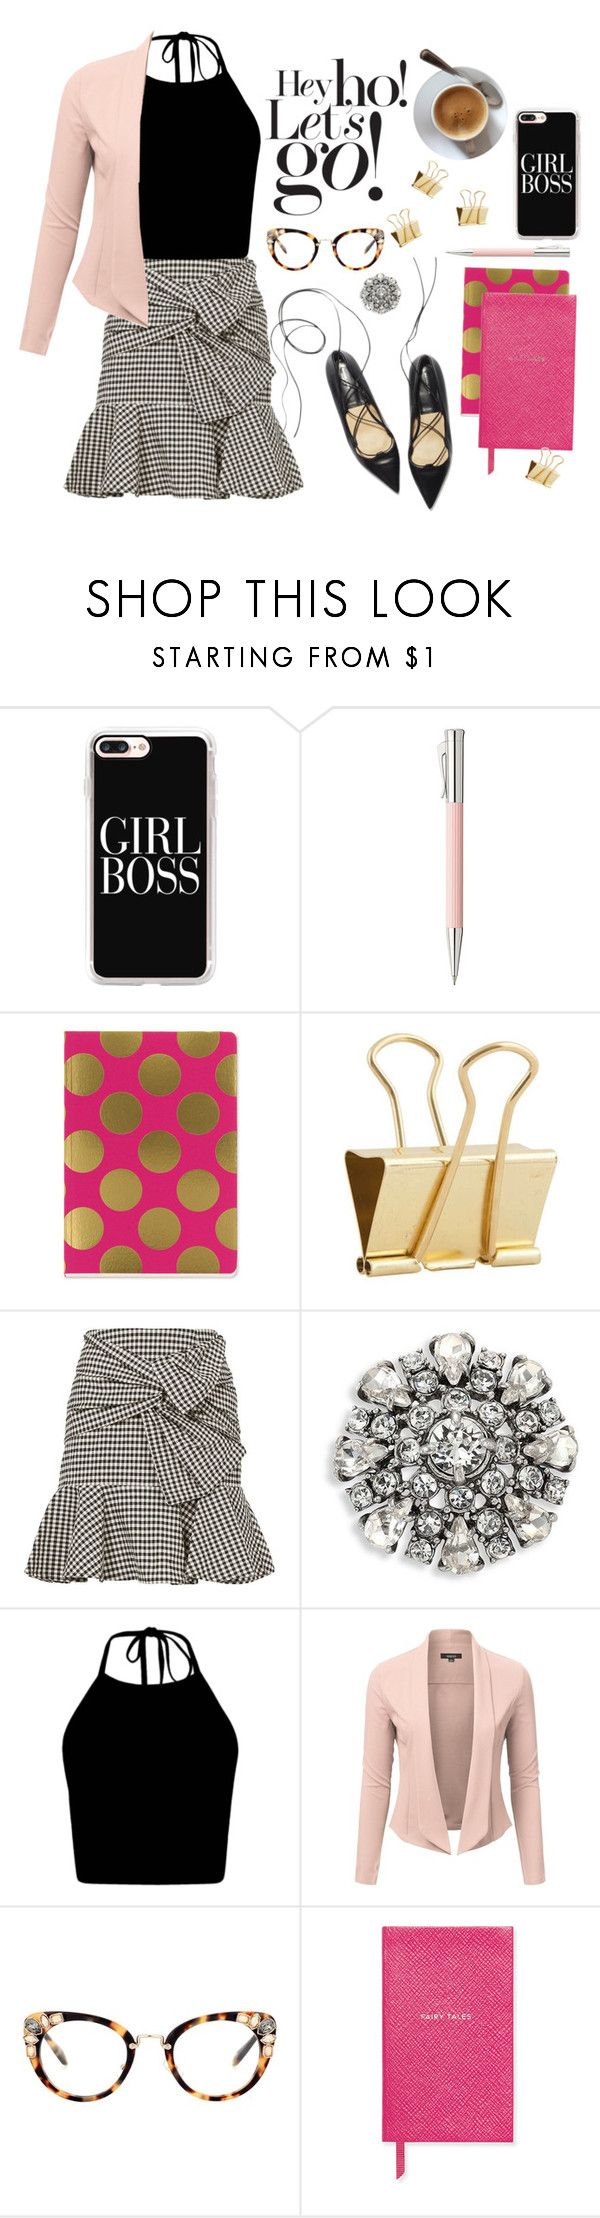 """Girl Boss"" by designed-4-life ❤ liked on Polyvore featuring Casetify, Faber-Castell, SNAP, Holly's House, Veronica Beard, Marc Jacobs, Miu Miu, Smythson and Damaris"